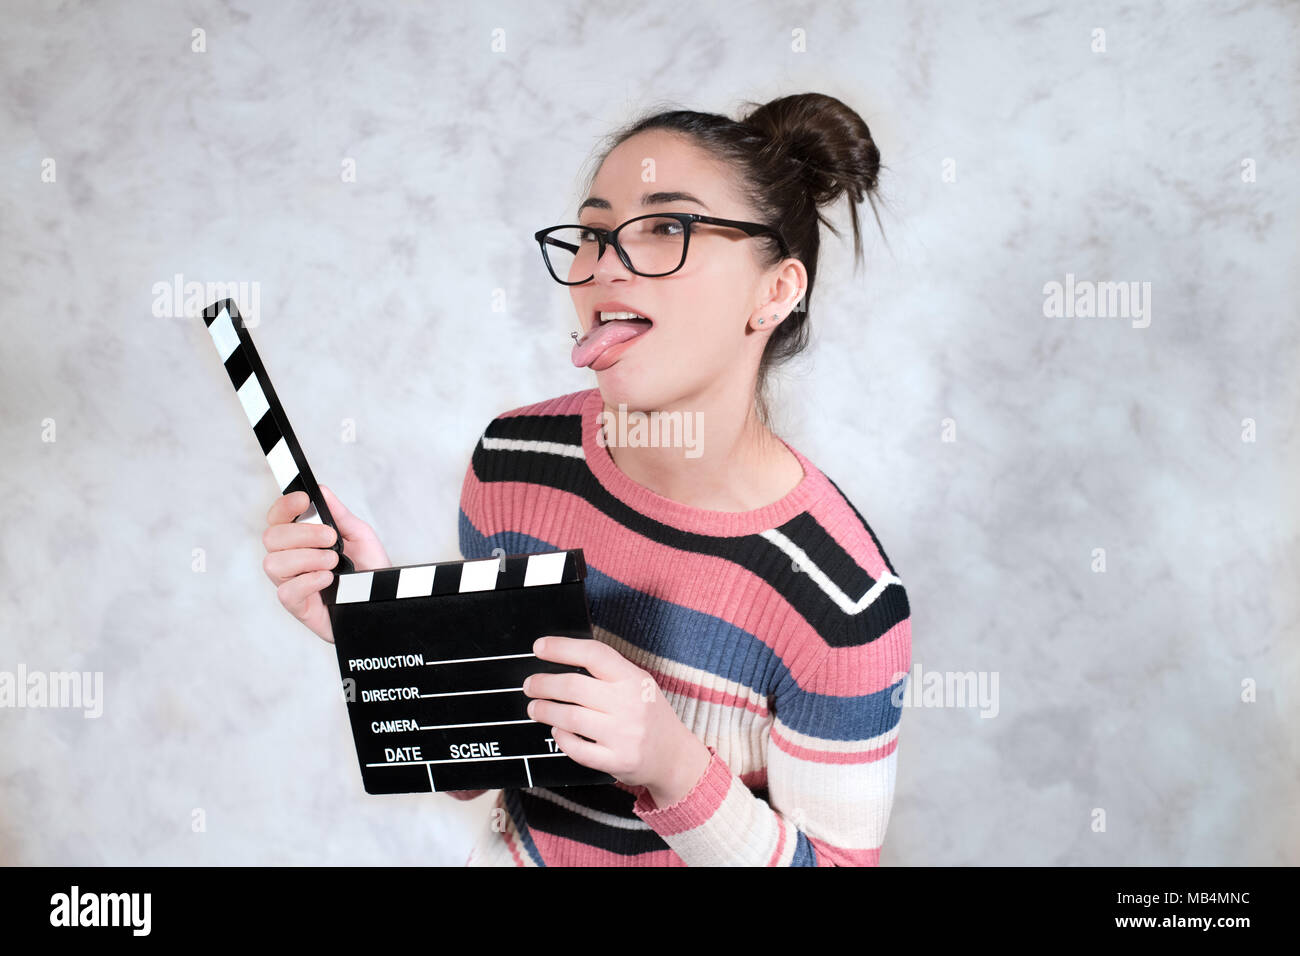 Young woman actress comedy funny grimace face expression mouth open with movie clapper board - Stock Image